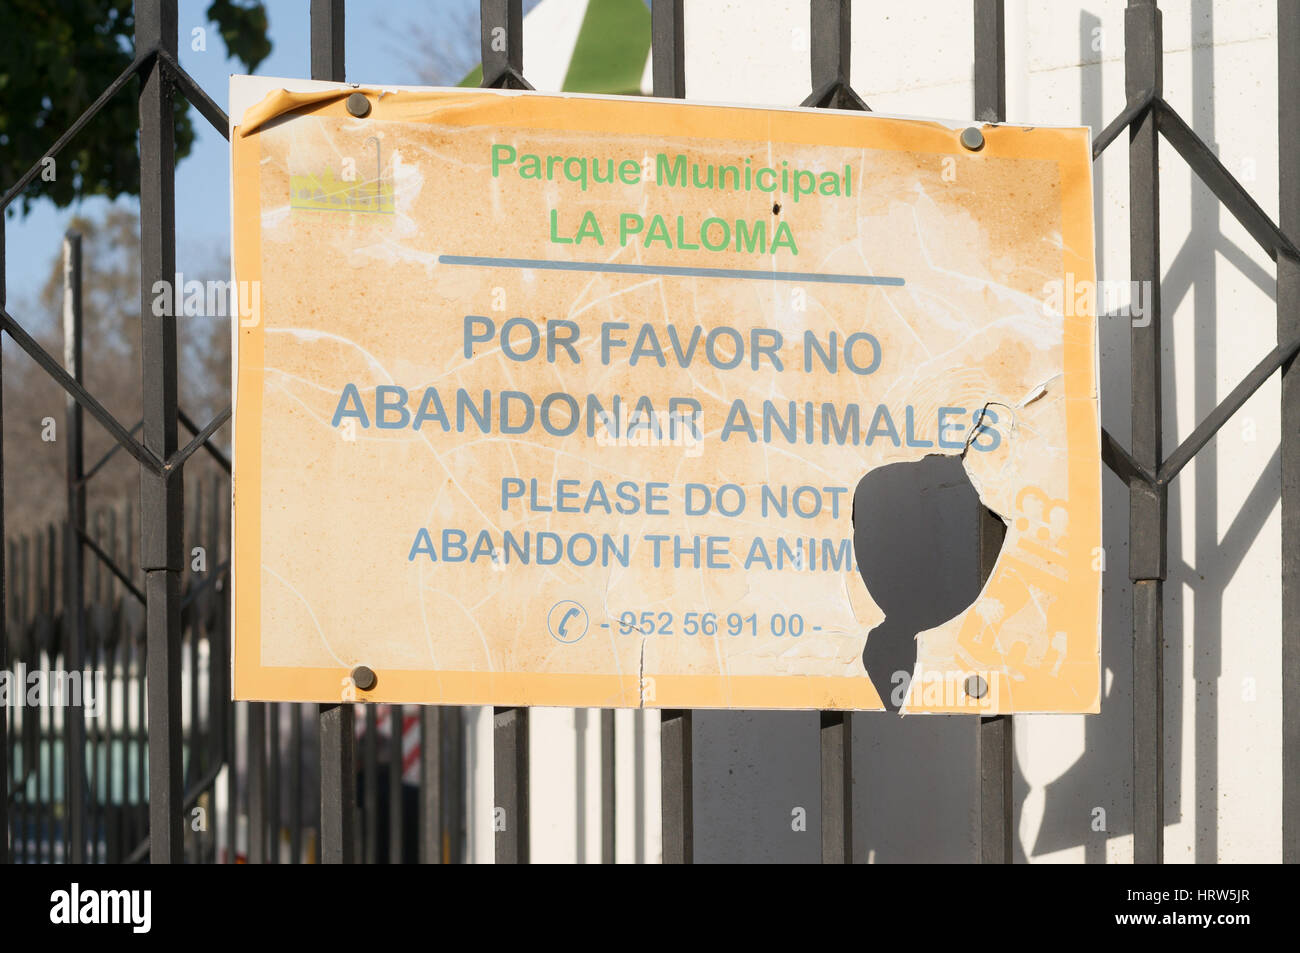 Sign, Do Not Abandon Animals, Parque Municipal La Paloma, Benalmadena, Spain - Stock Image